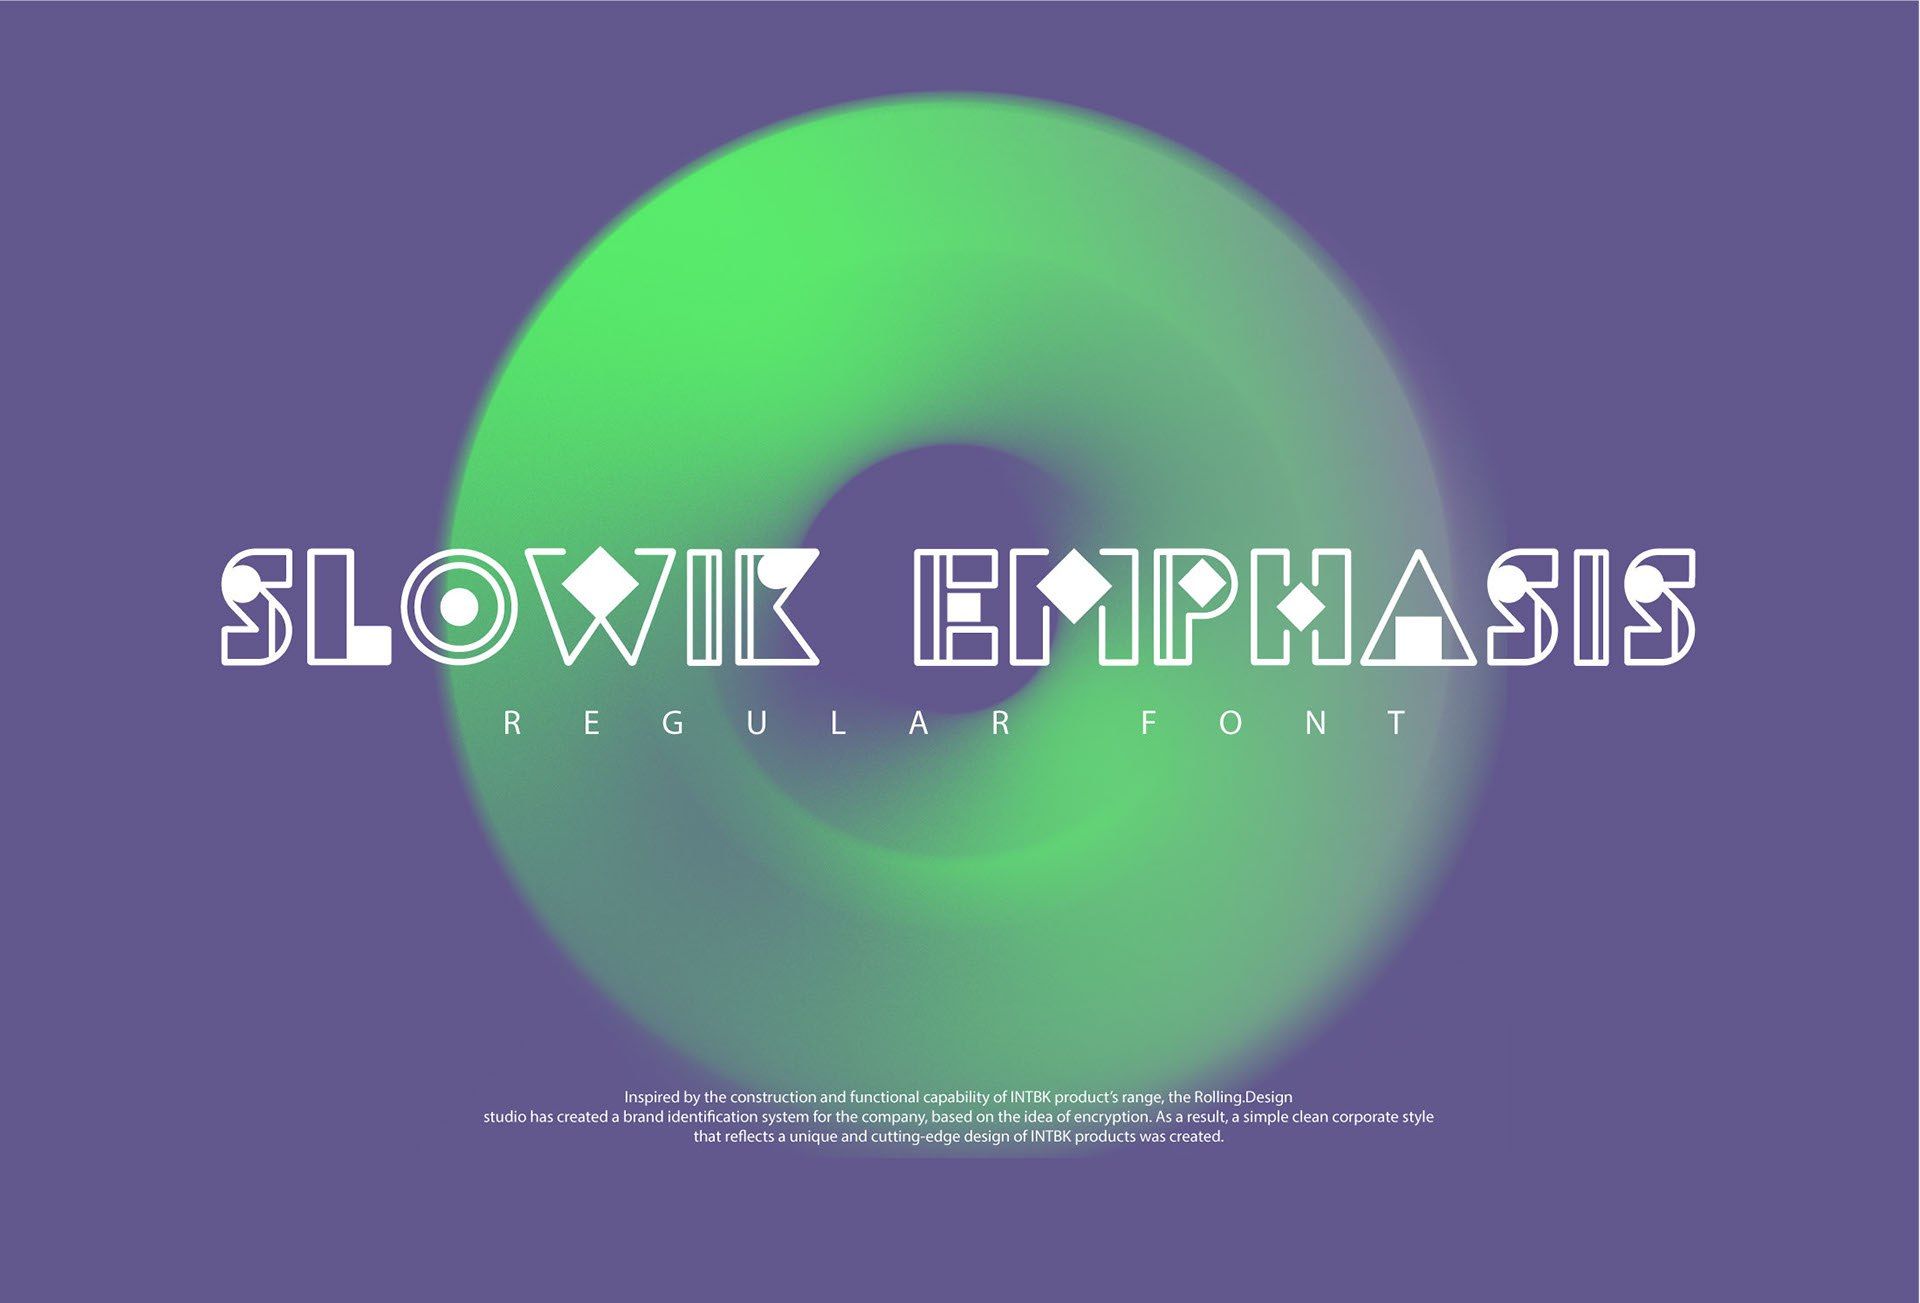 Slowik Emphasis